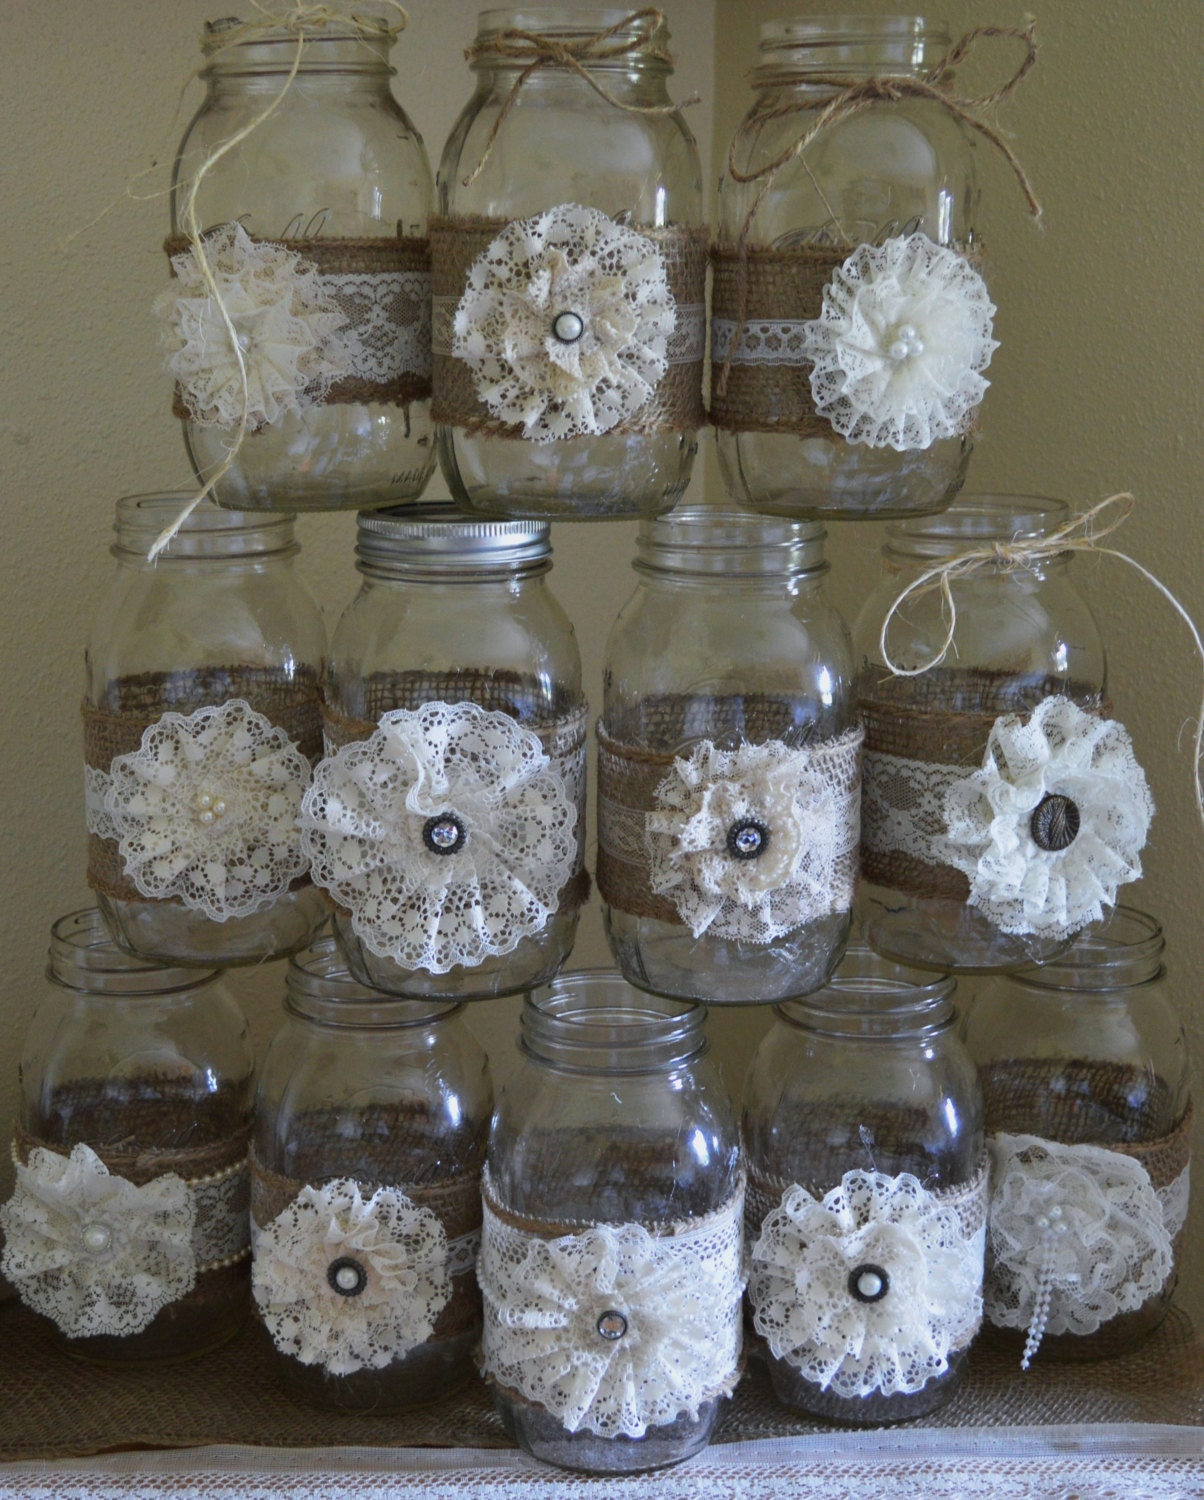 12 mason jar wedding decorations vintage wedding decorations for Vintage wedding decorations